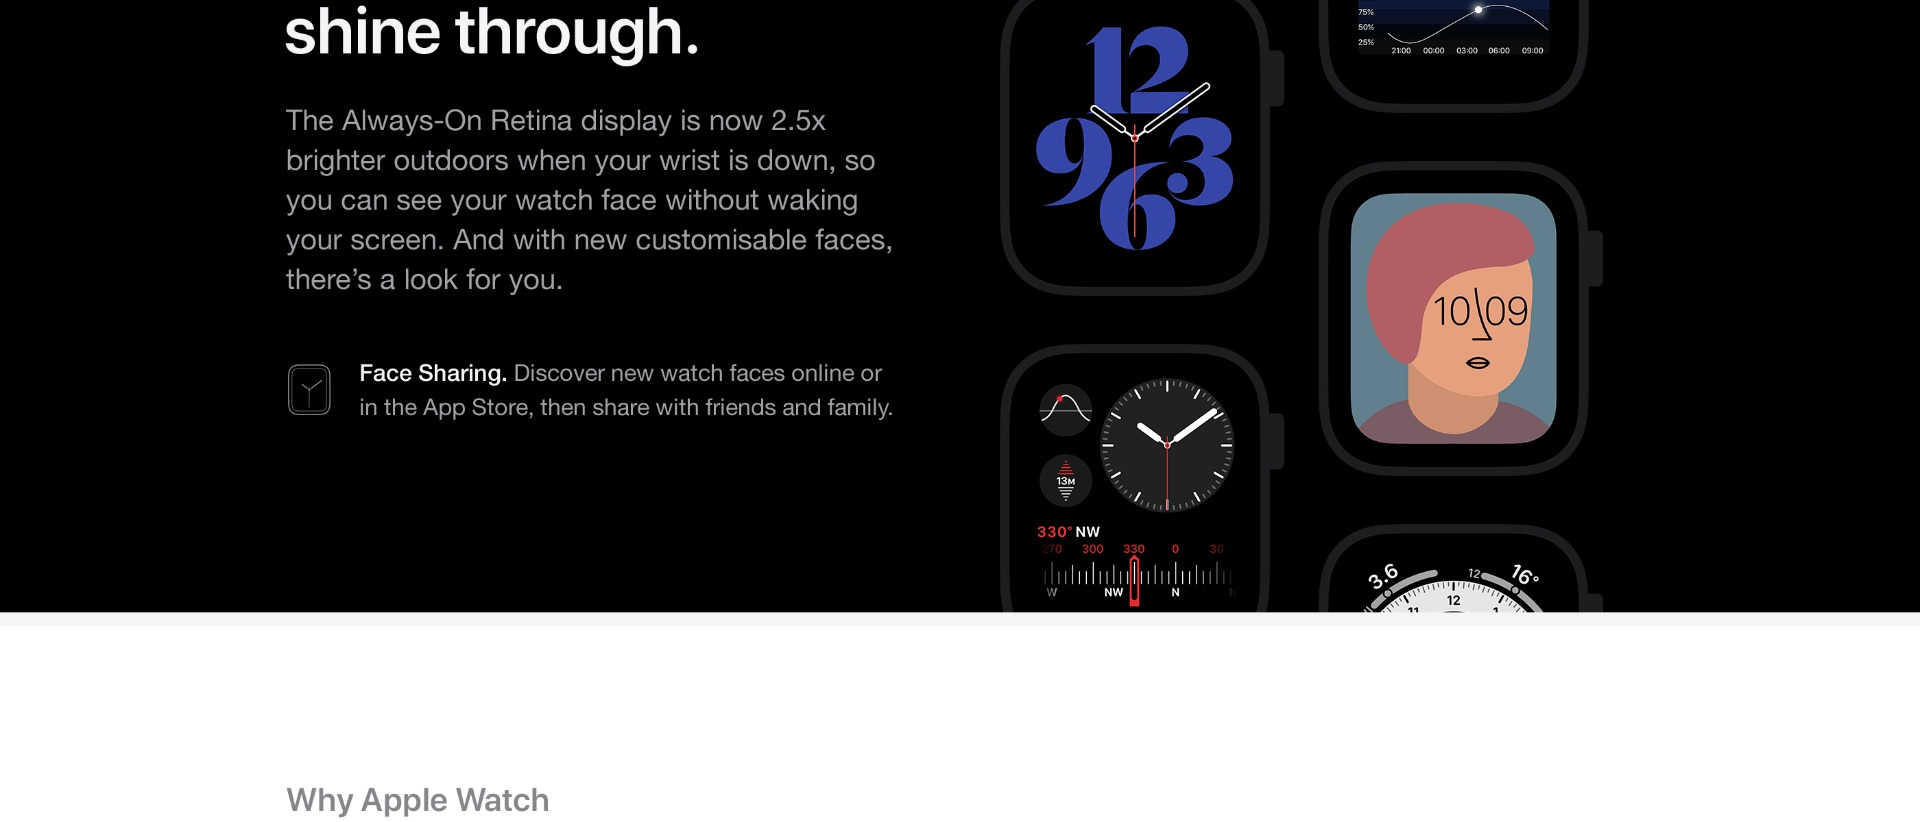 Apple Watch Series 6. The future of health is on your wrist.